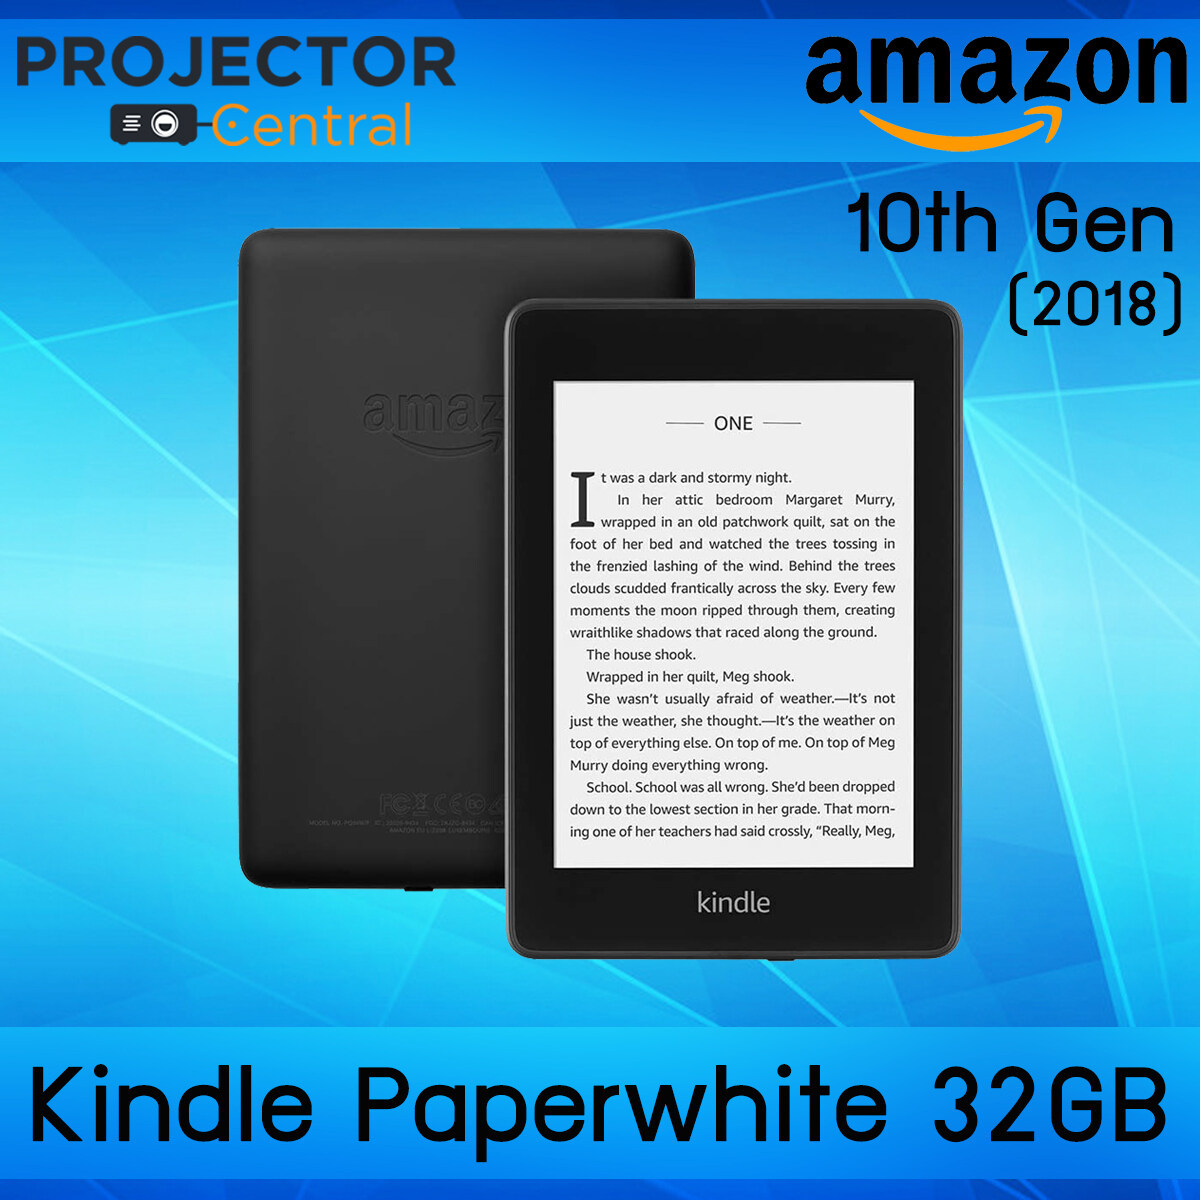 Amazon Kindle Paperwhite (10th Gen/ 2018) - Black 32gb (no Ad. On Screensaver/international Version) Ebook Reader,1 Year Warranty.